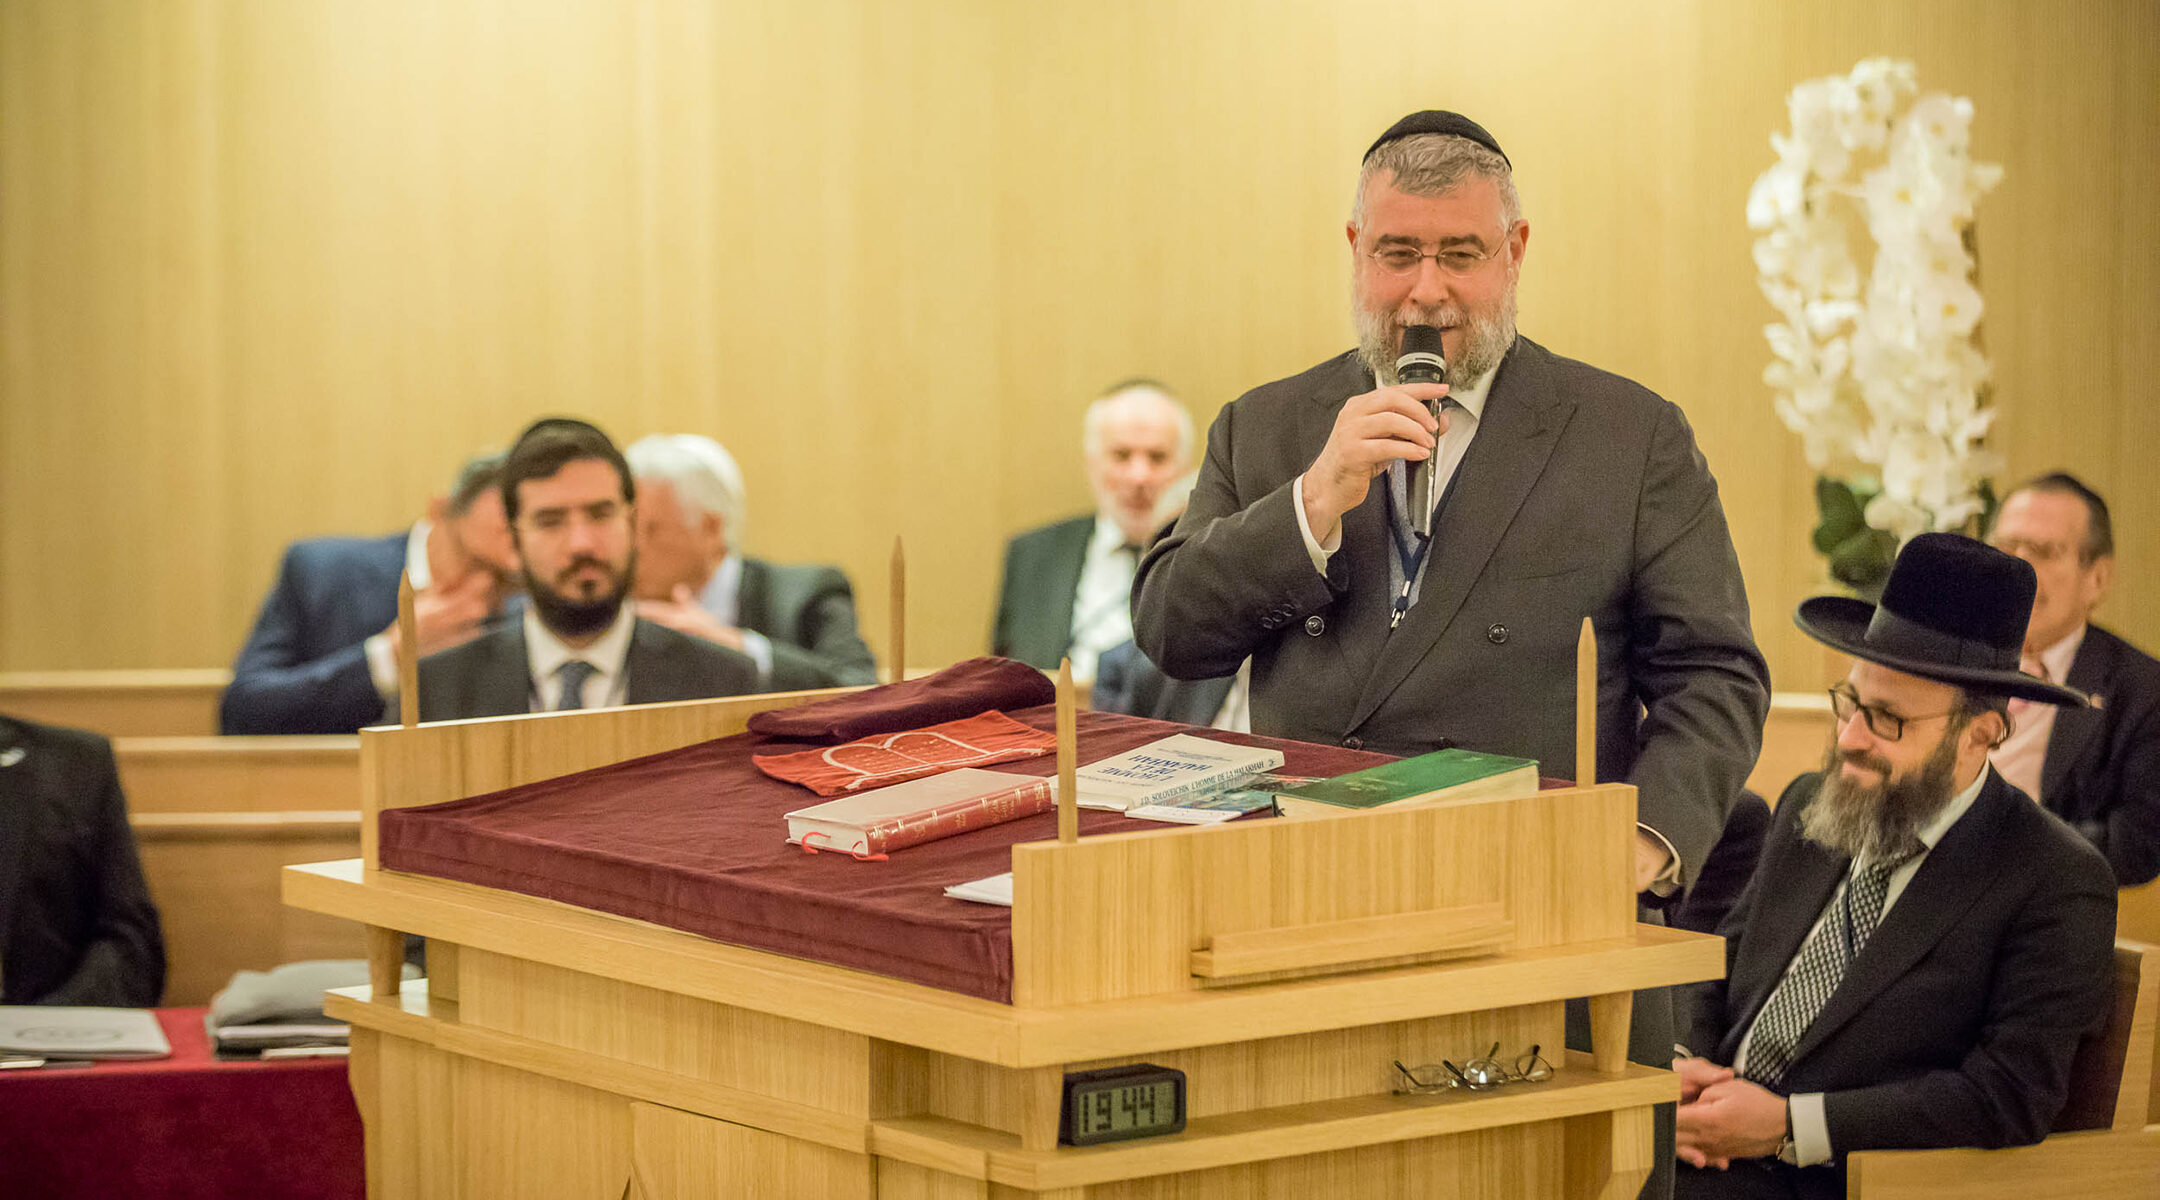 Rabbi Pinchas Goldschmidt speaks at a synagogue in Monaco on Nov. 23, 2017. (Courtesy of the Conference of European Rabbis)